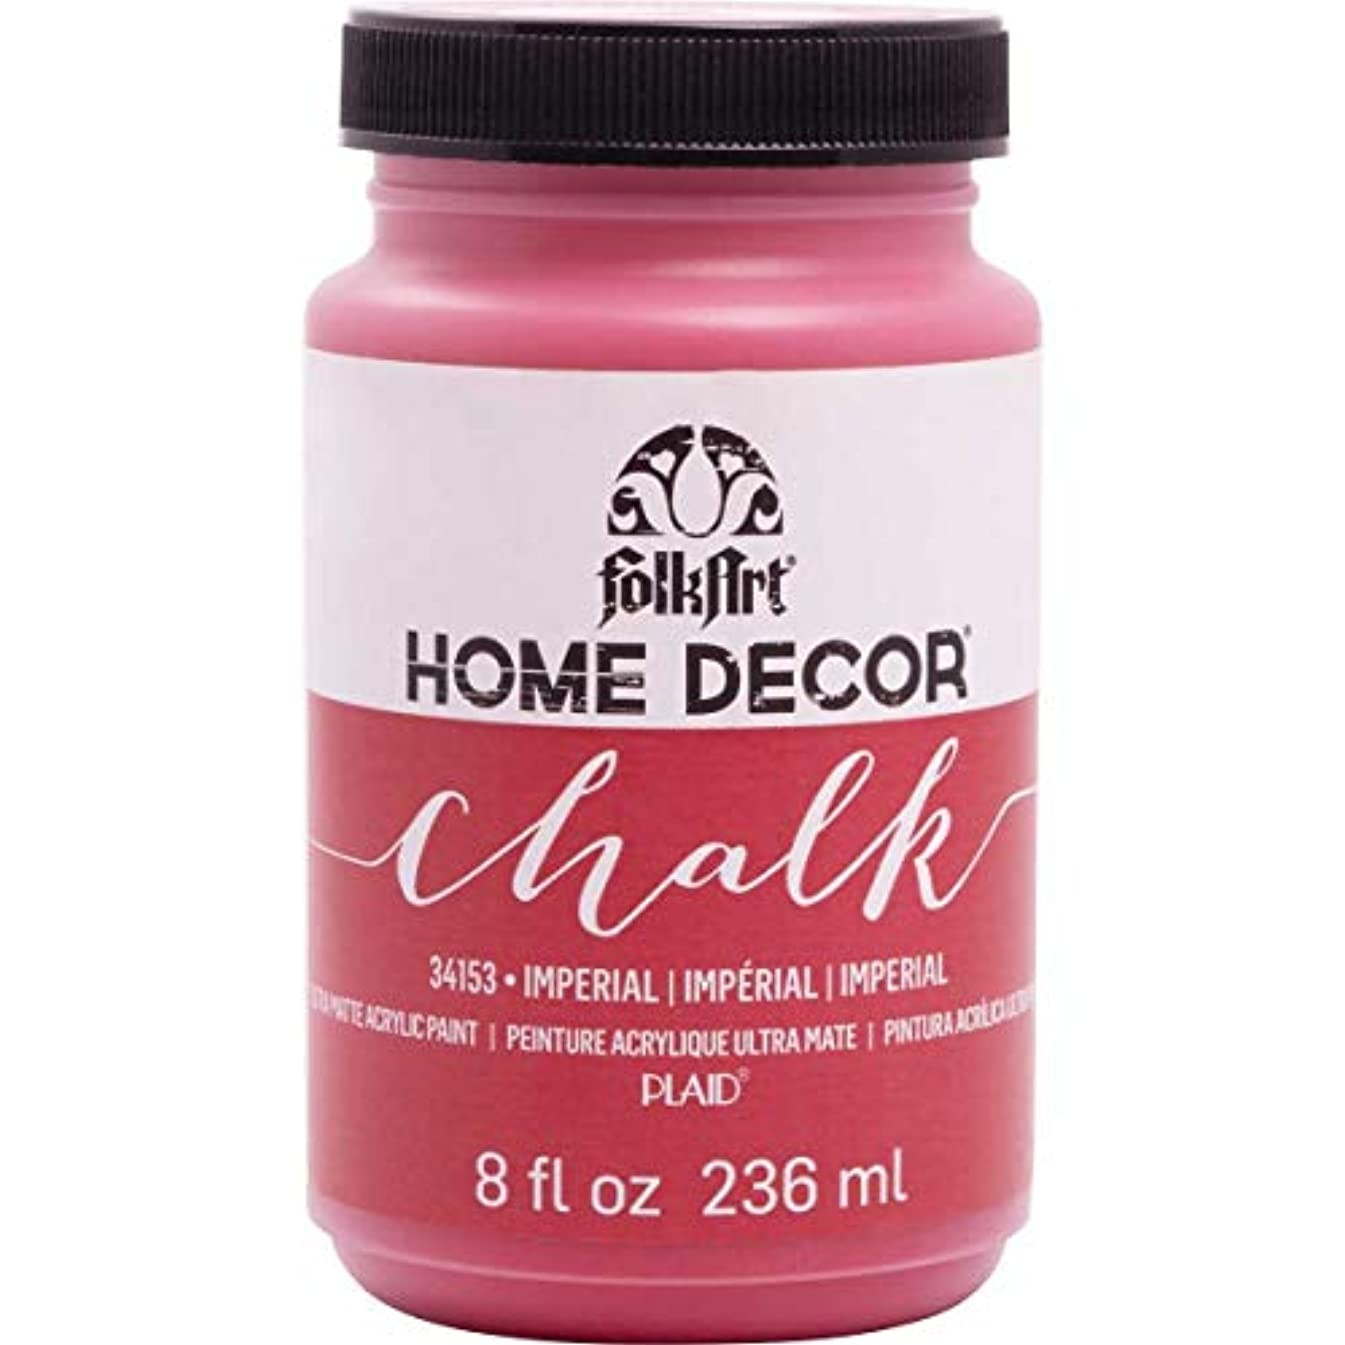 FolkArt Home Decor Chalk Furniture & Craft Paint in Assorted Colors (8 Ounce), 34153 Imperial